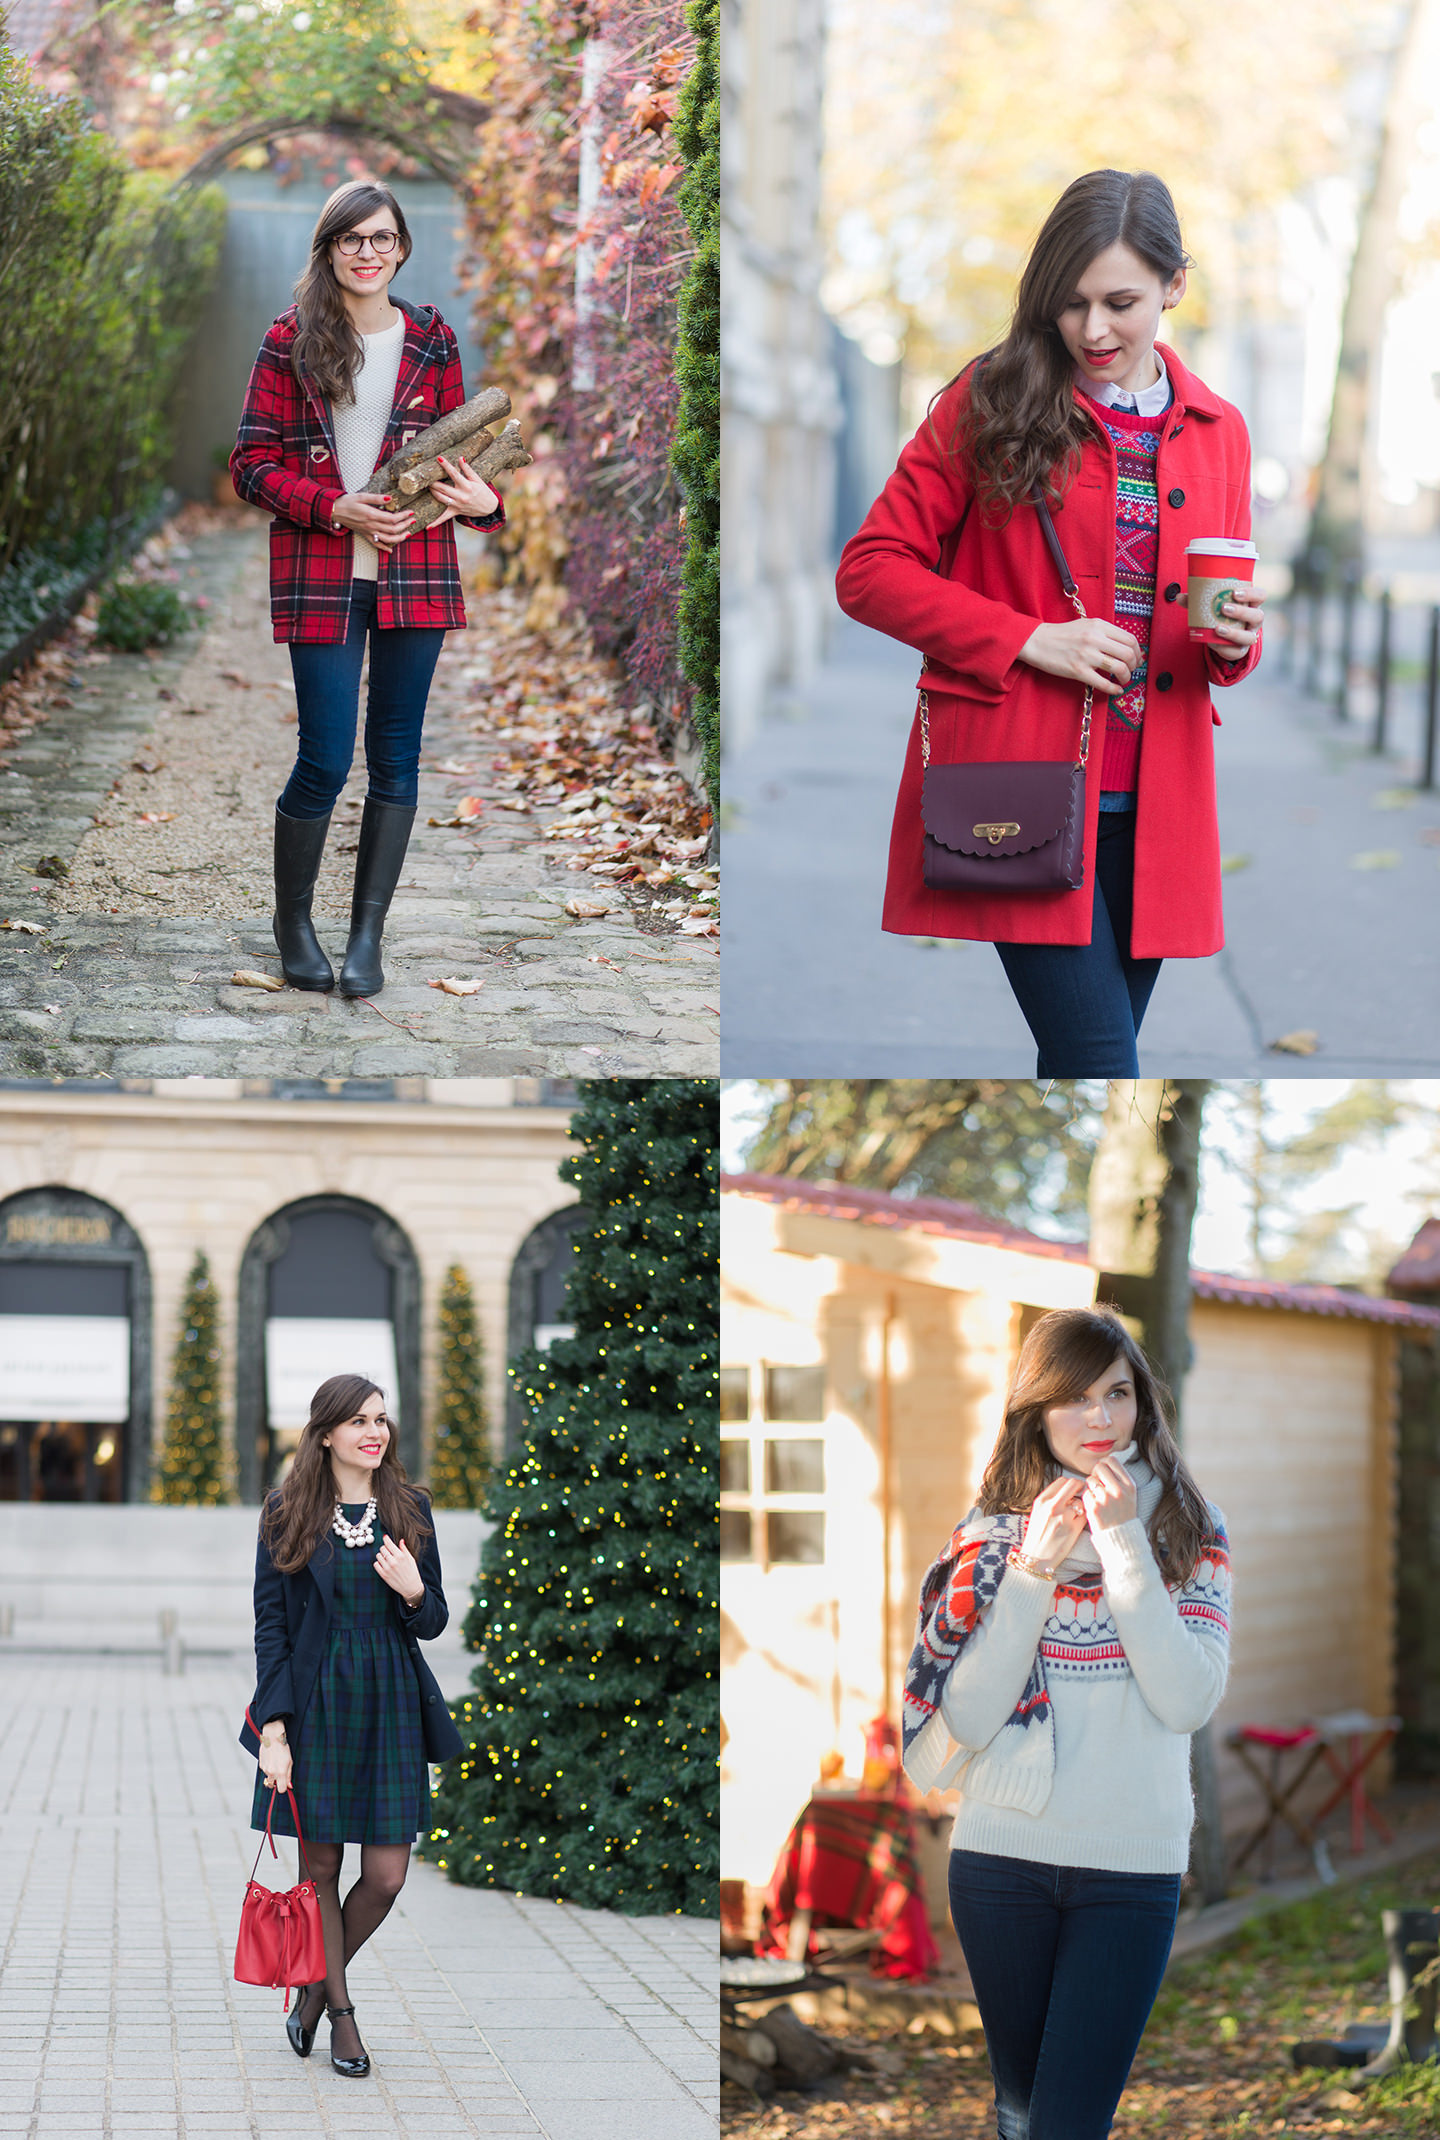 Blog-Mode-And-The-City-decembre-2015